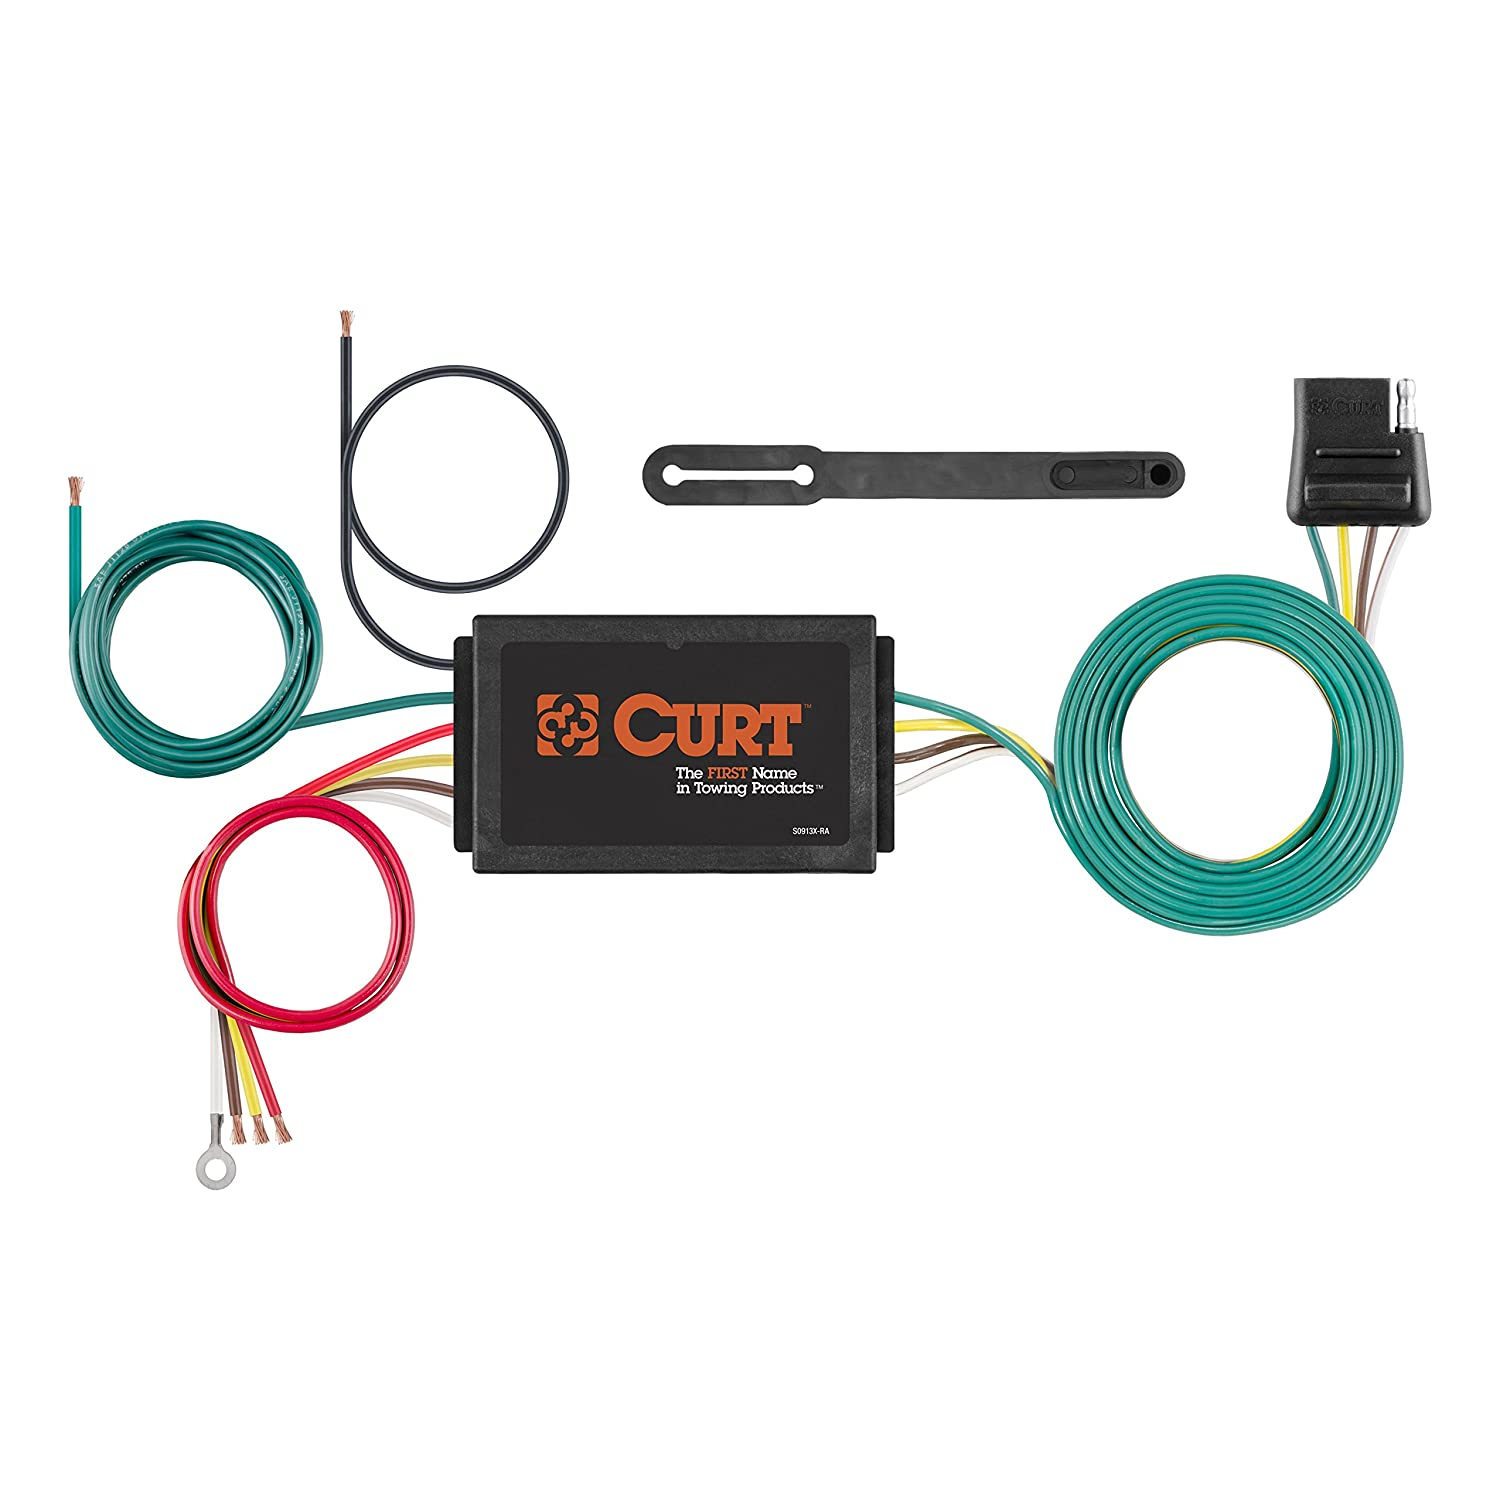 Curt 56190 Powered 3 To 2 Wire Taillight Converter 2009 Bmw X5 Trailer Wiring Harness Automotive